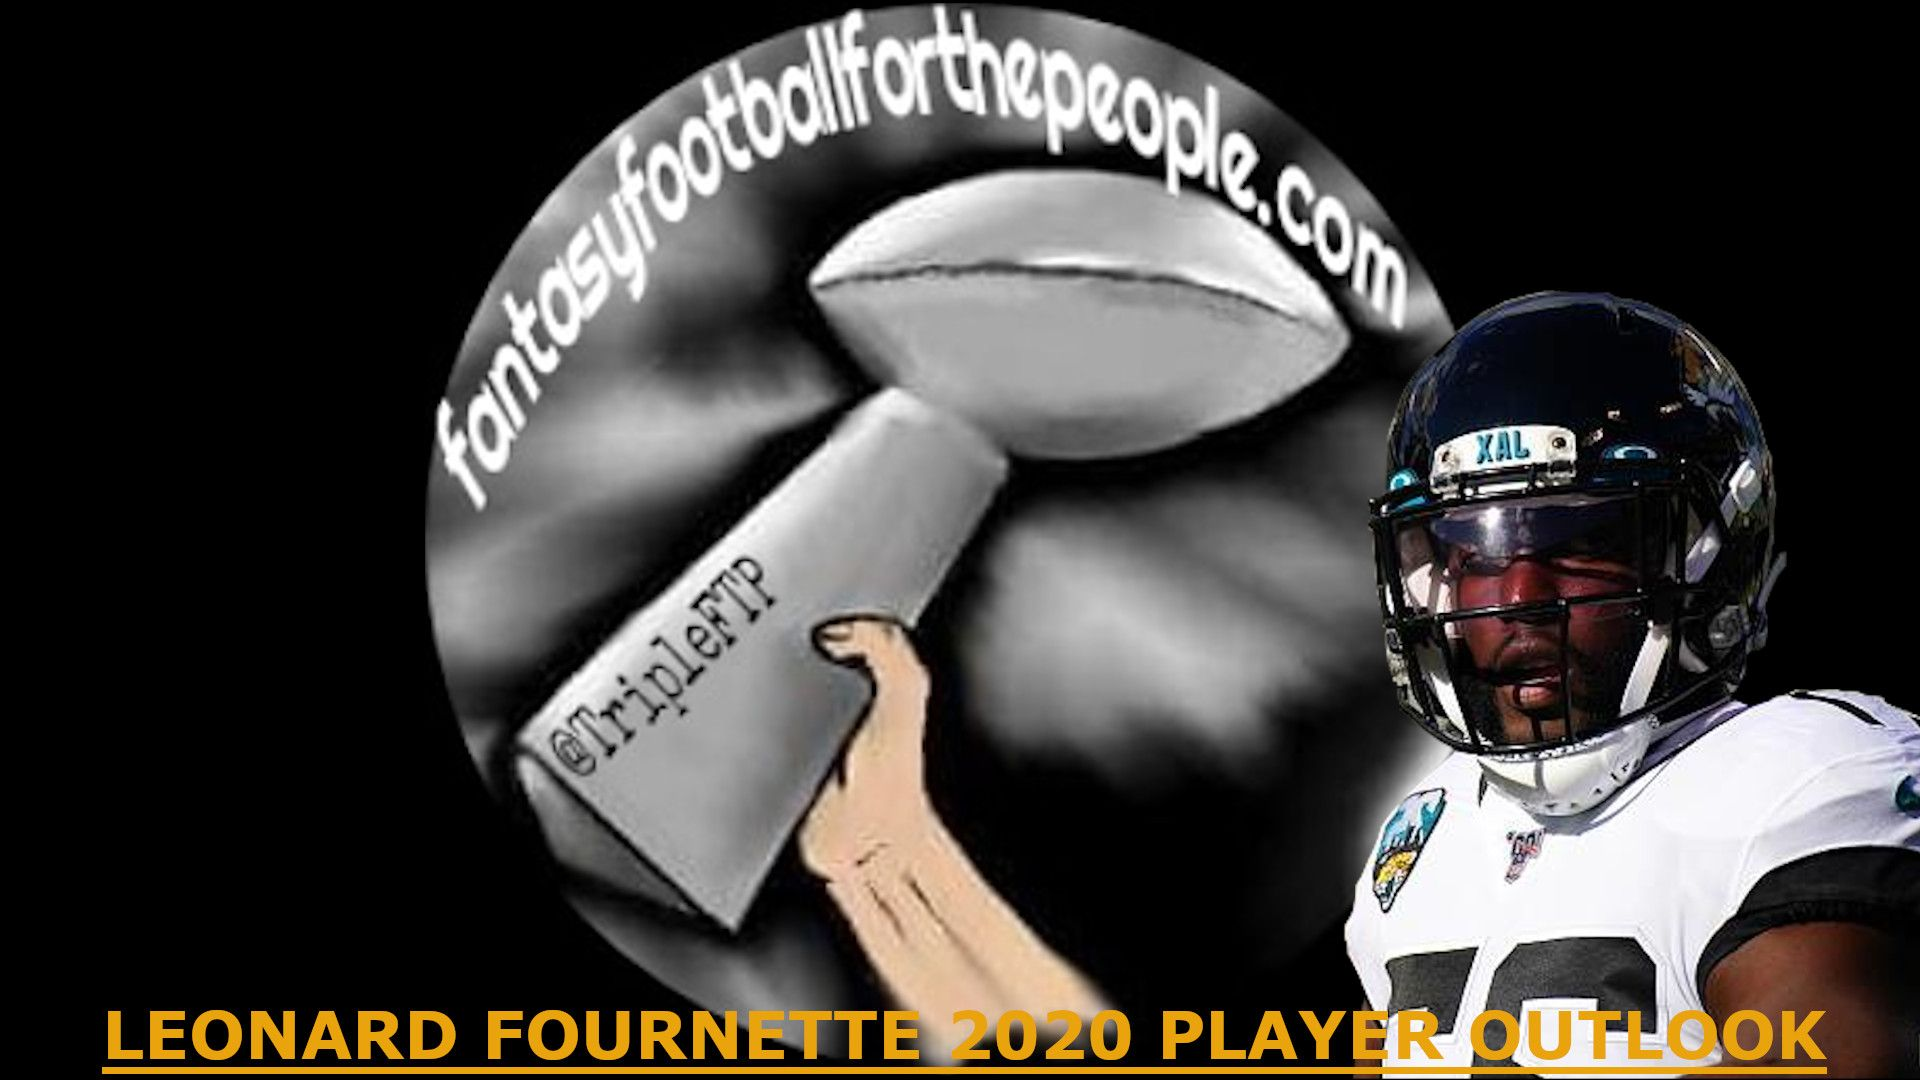 2020 Player Outlook Rb Leonard Fournette In 2020 Fantasy Football Players Football